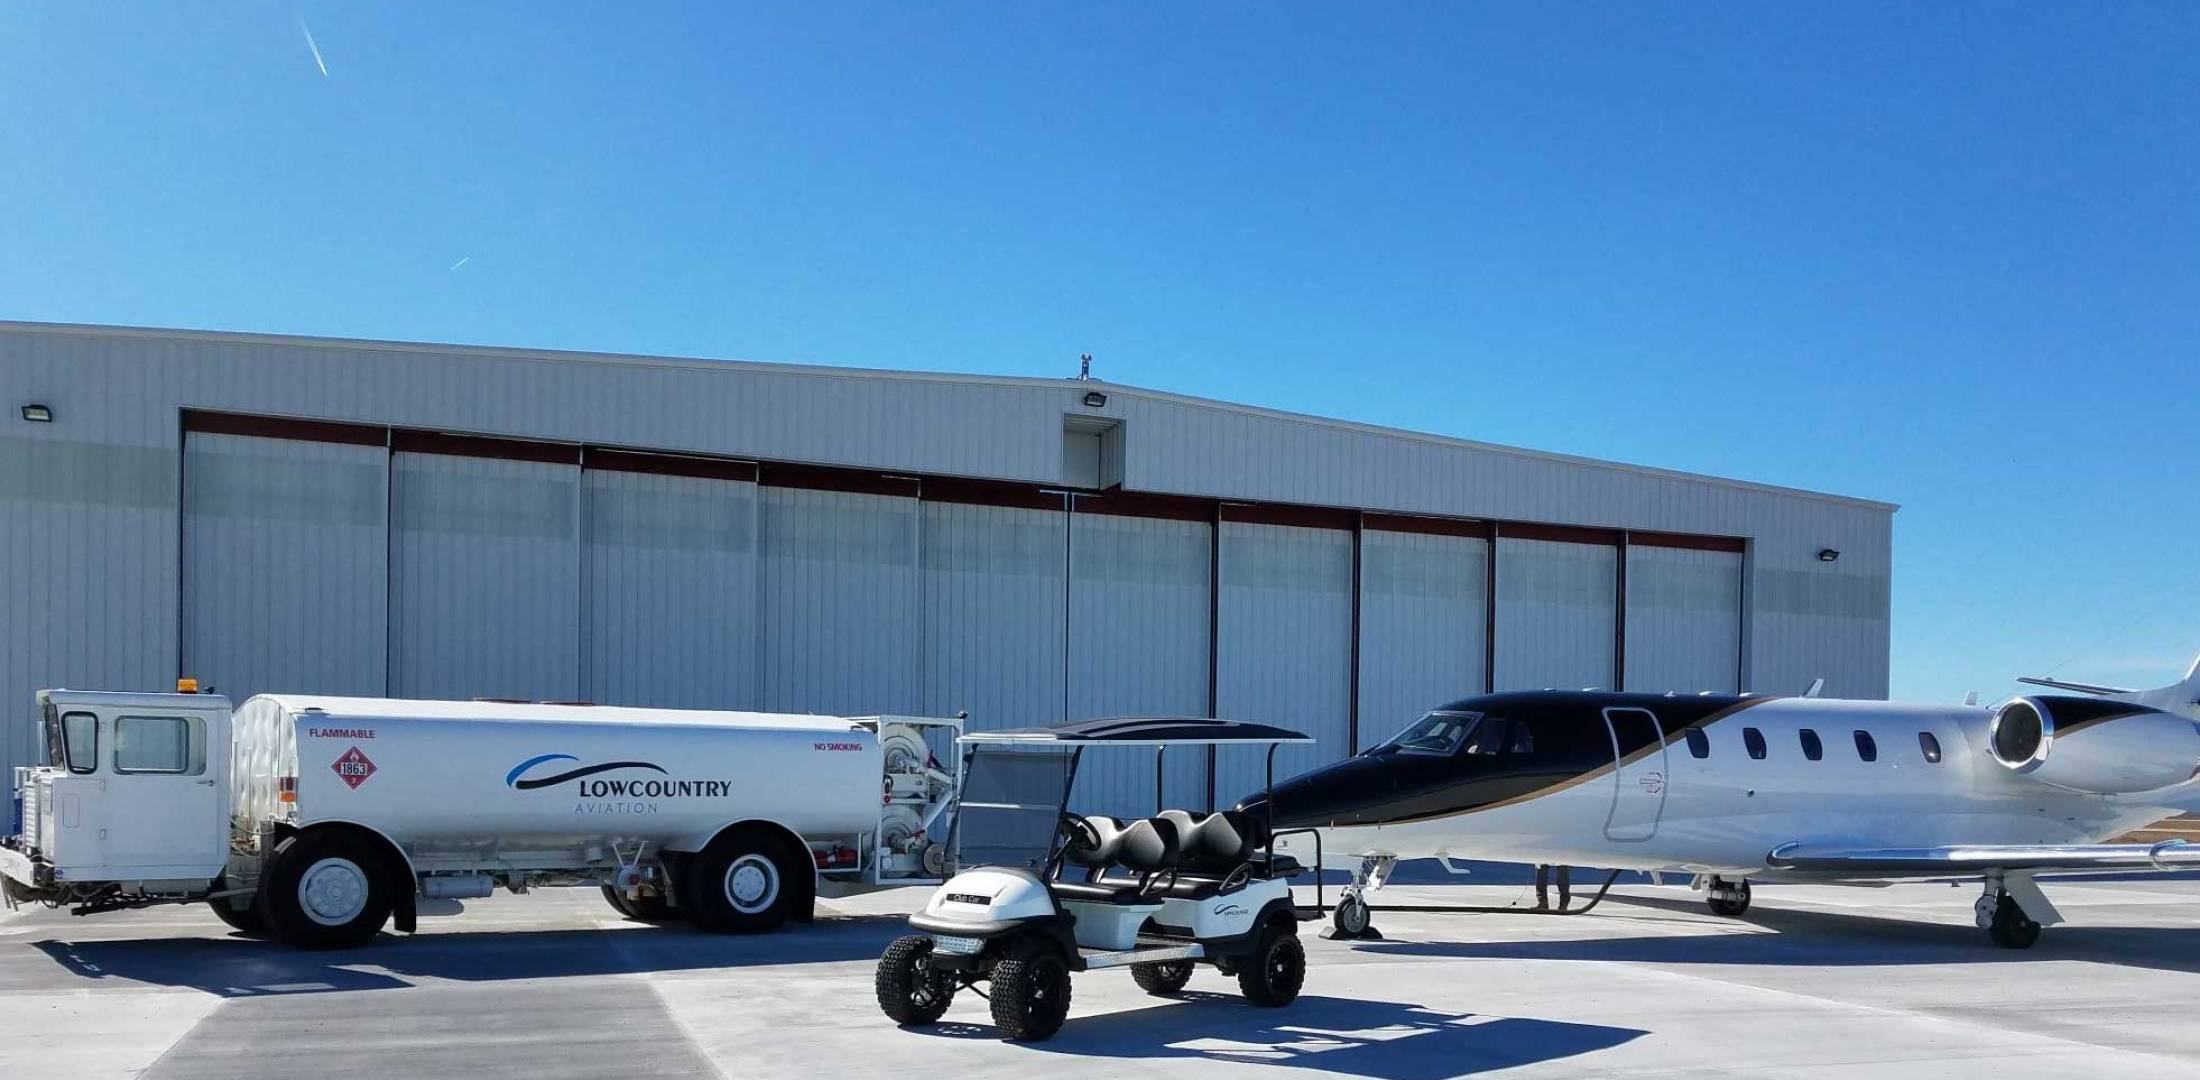 Lowcountry Aviation